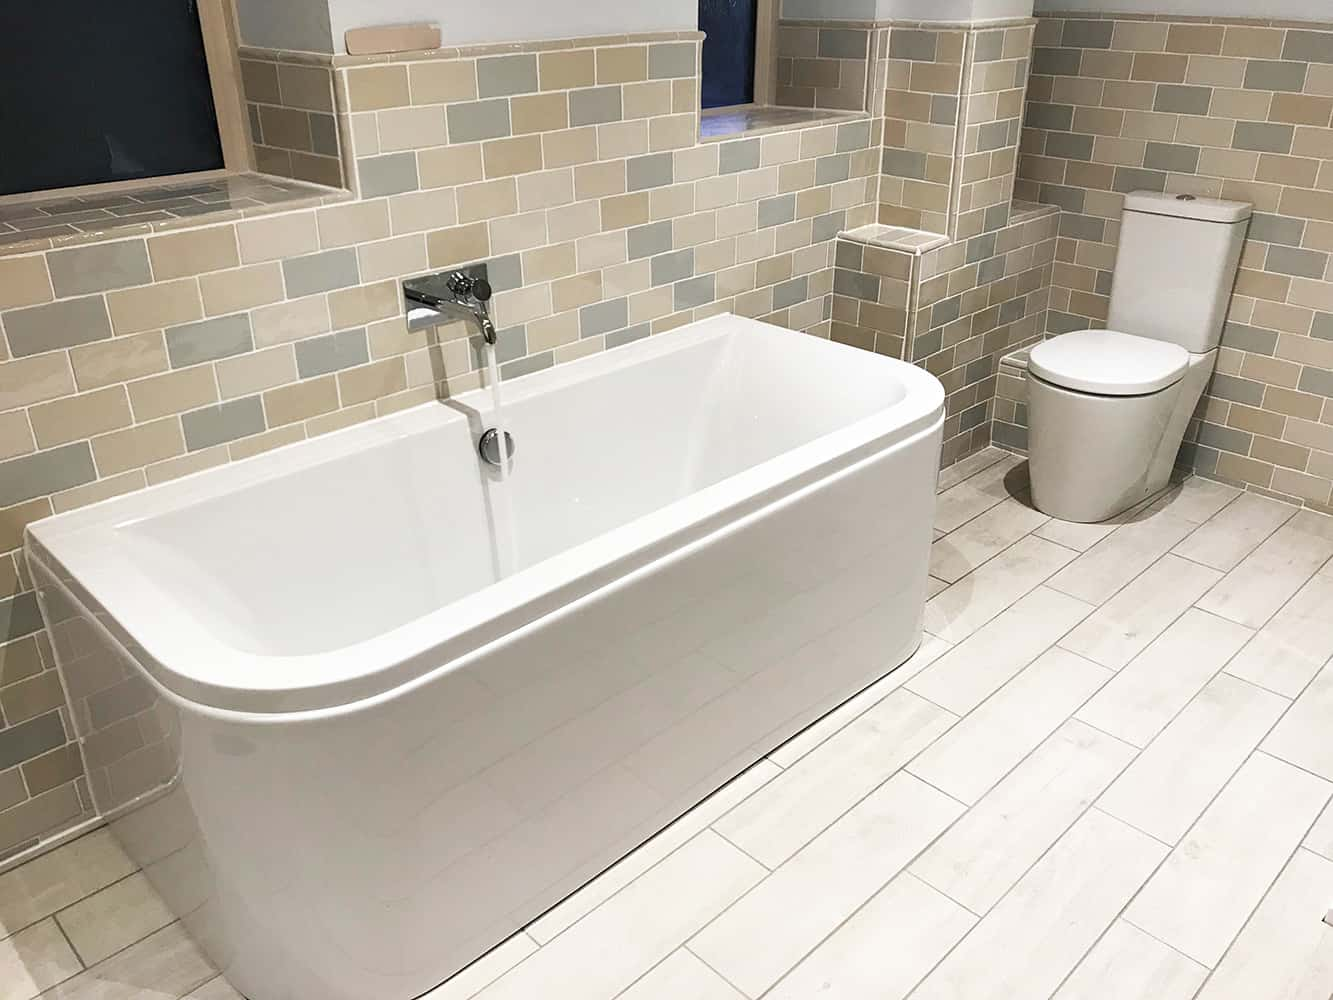 Domestic Tiling - Domestic and commercial tiling contractors for Oxford